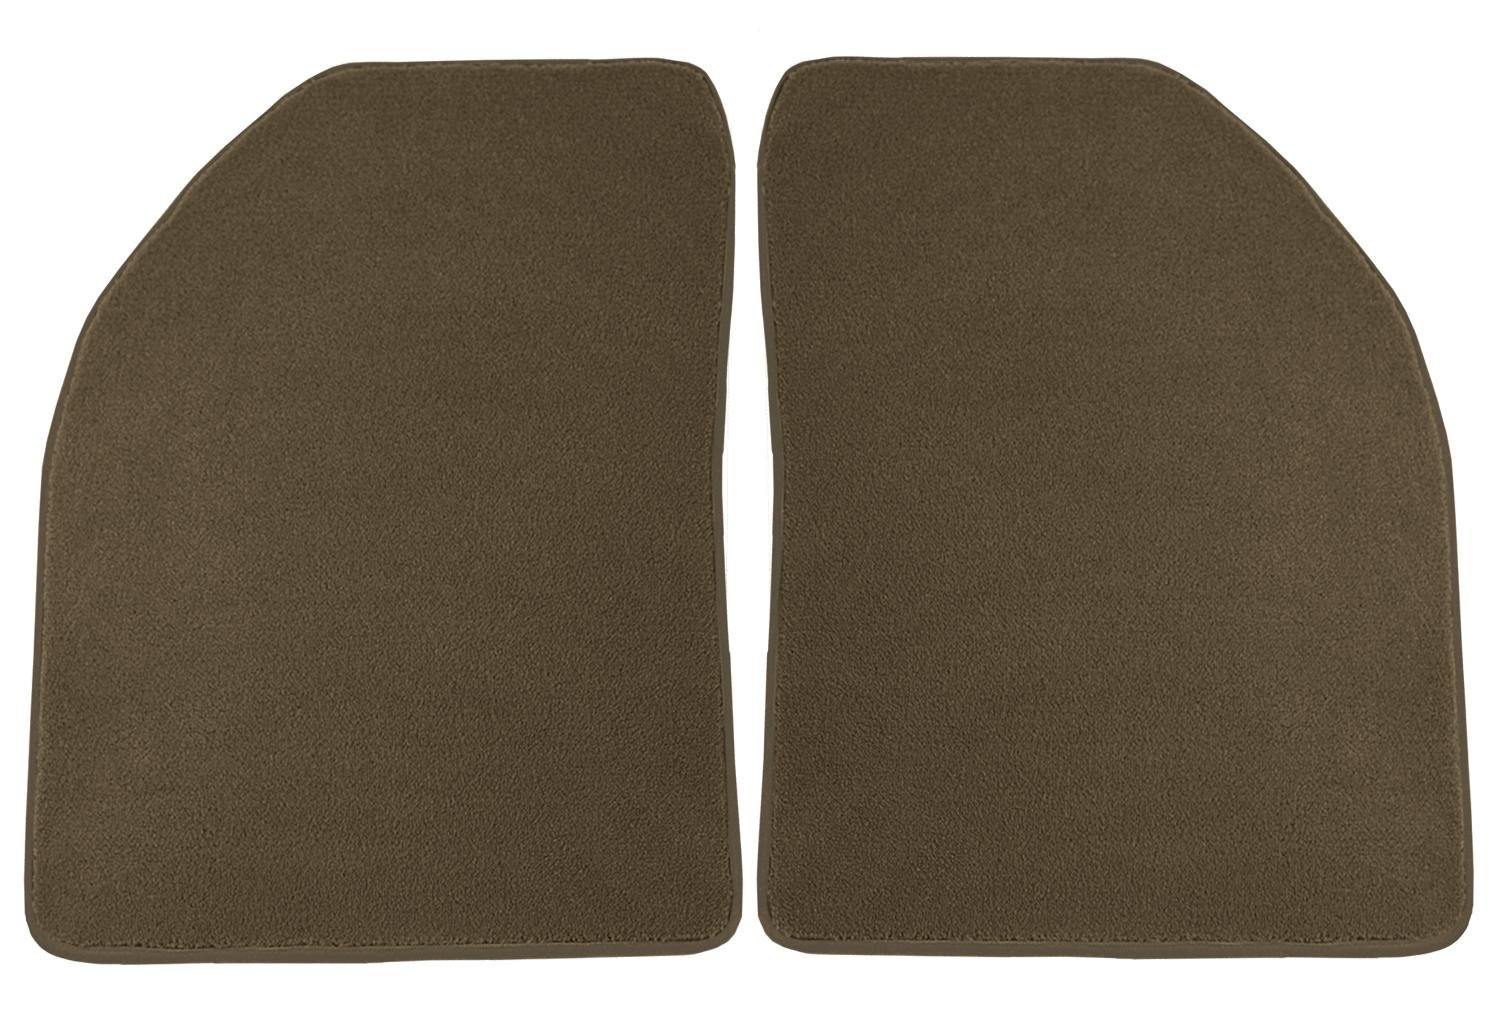 Coverking Custom Fit Rear Floor Mats for Select Hummer H2 Models Nylon Carpet Black